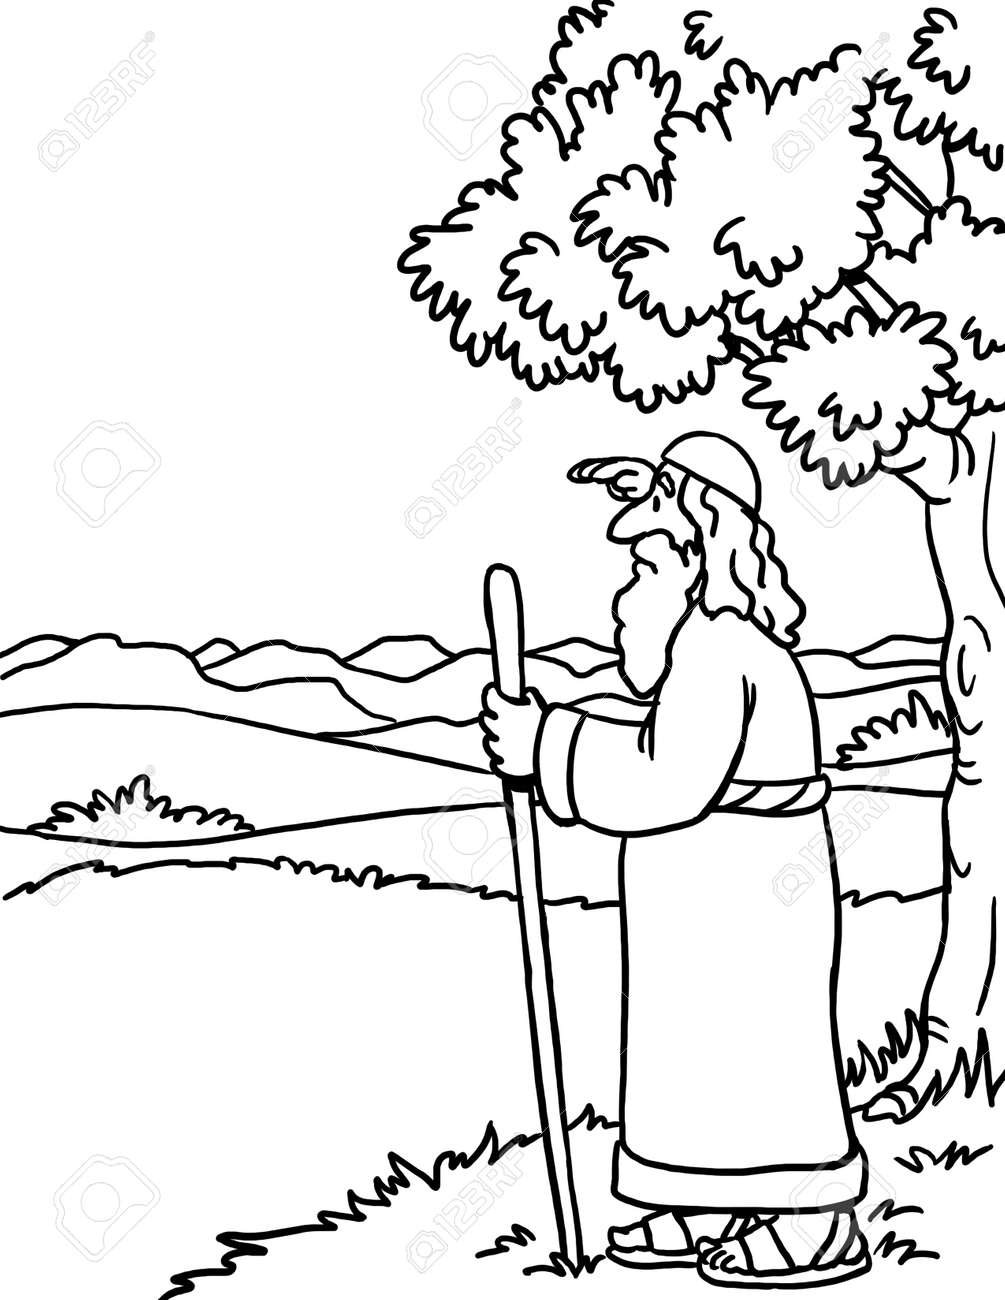 77 Top Coloring Pages For Biblical Character  Images